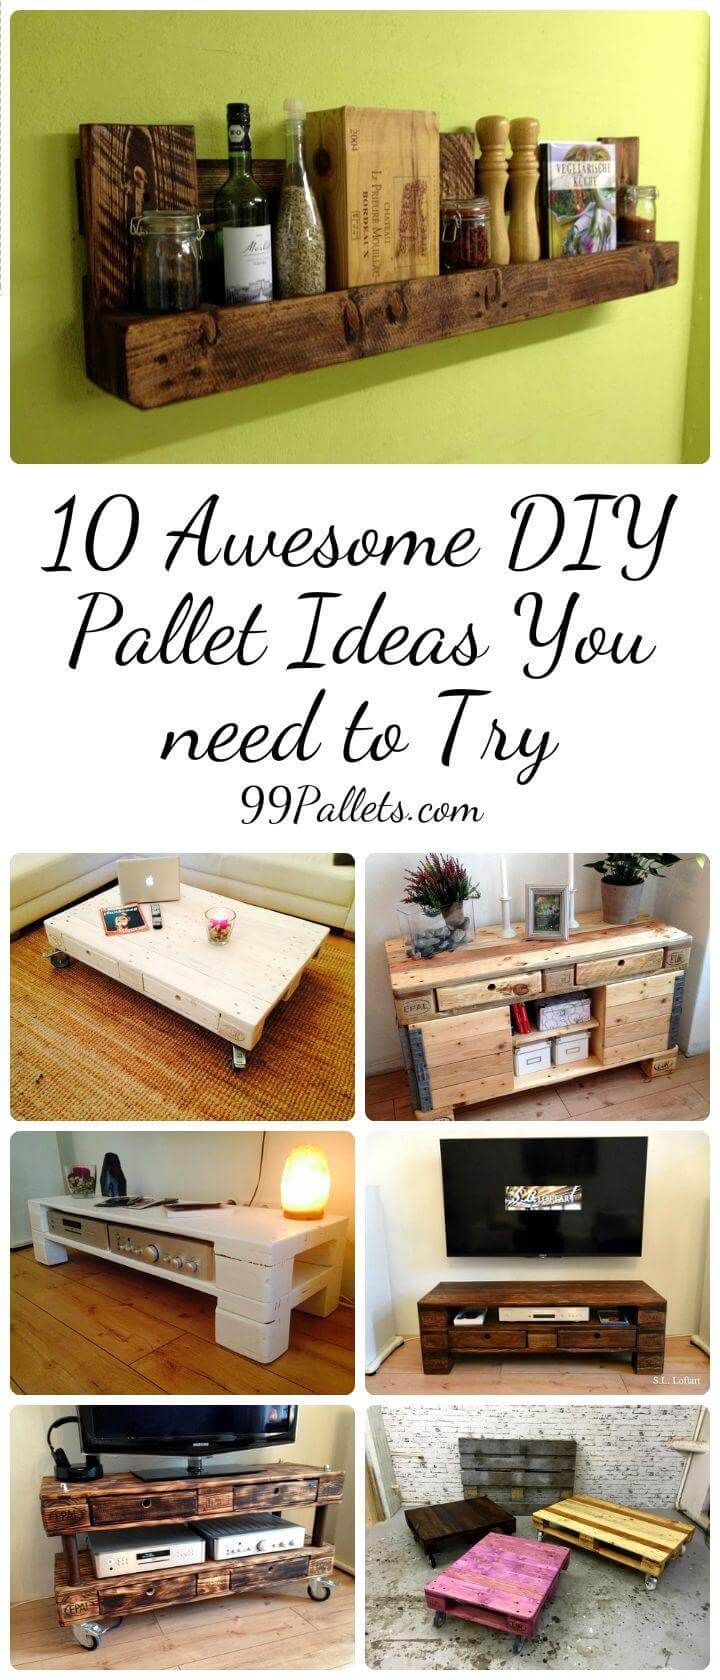 10 Awesome DIY Pallet Ideas You Need To Try